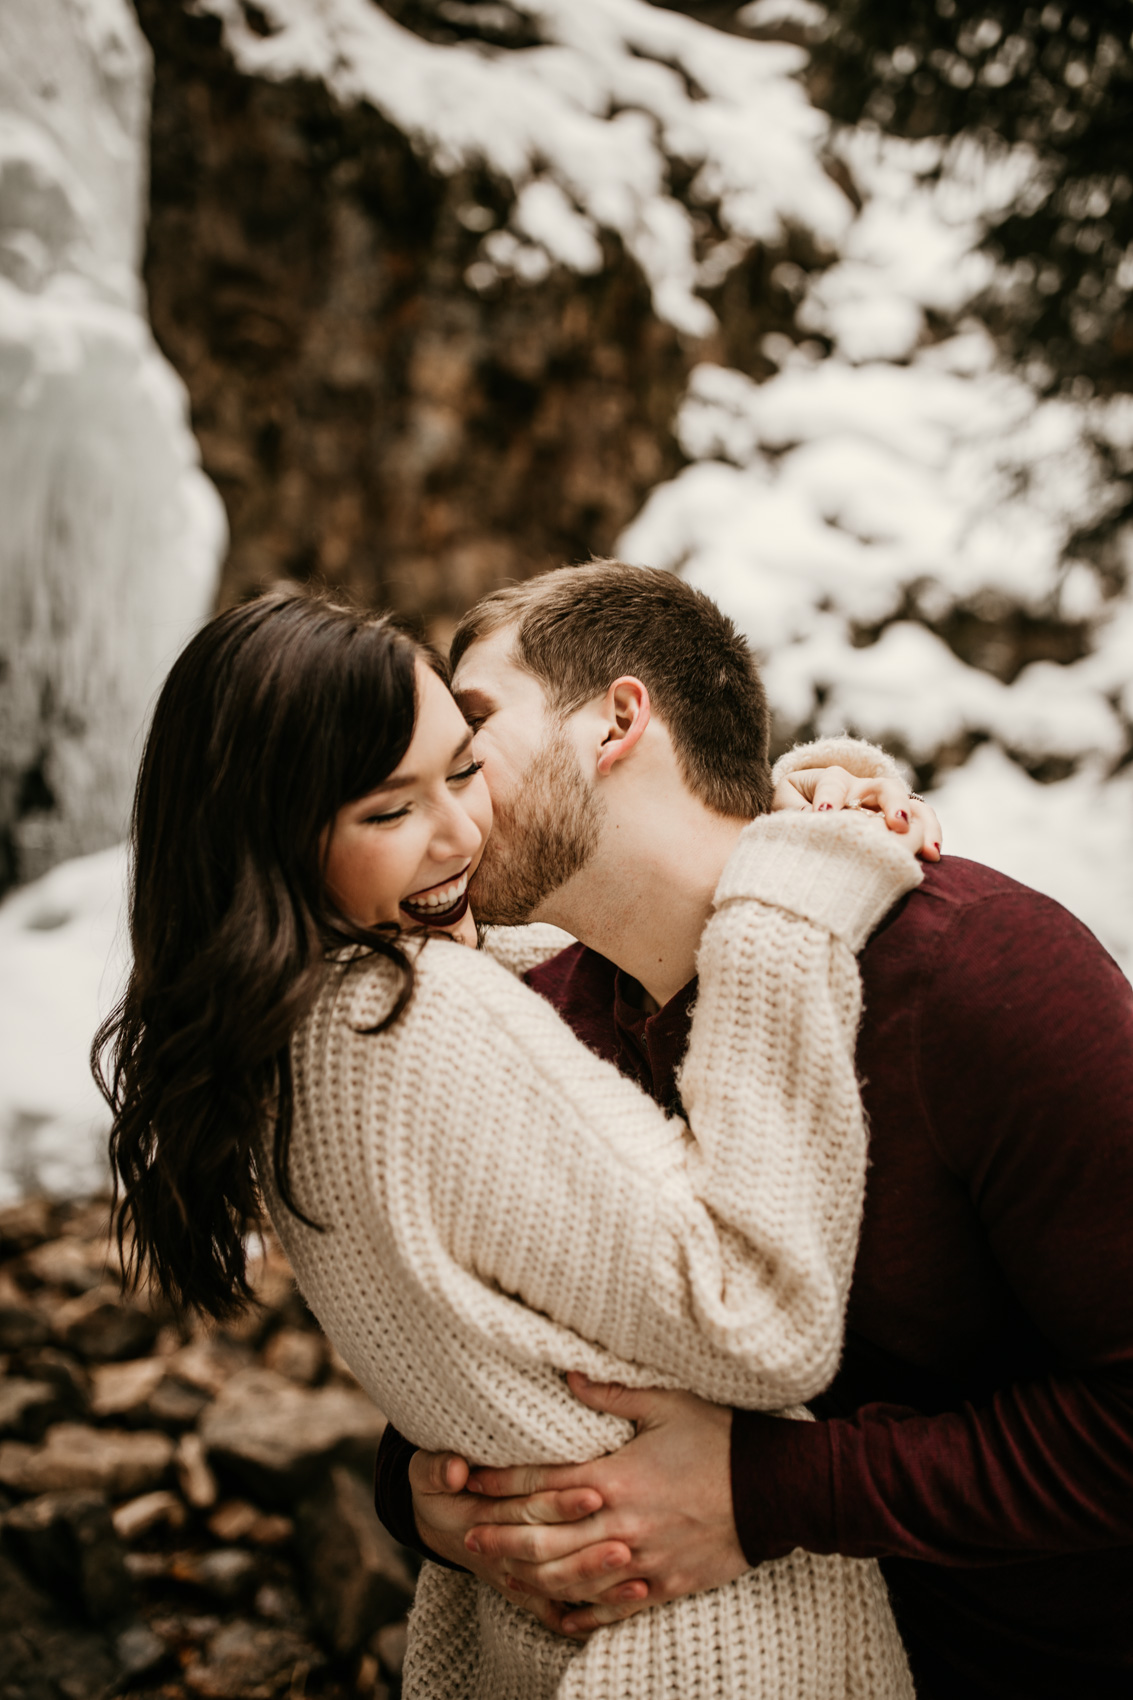 Molly-Trenton_Montana-Waterfall-Engagment-Session-7.jpg